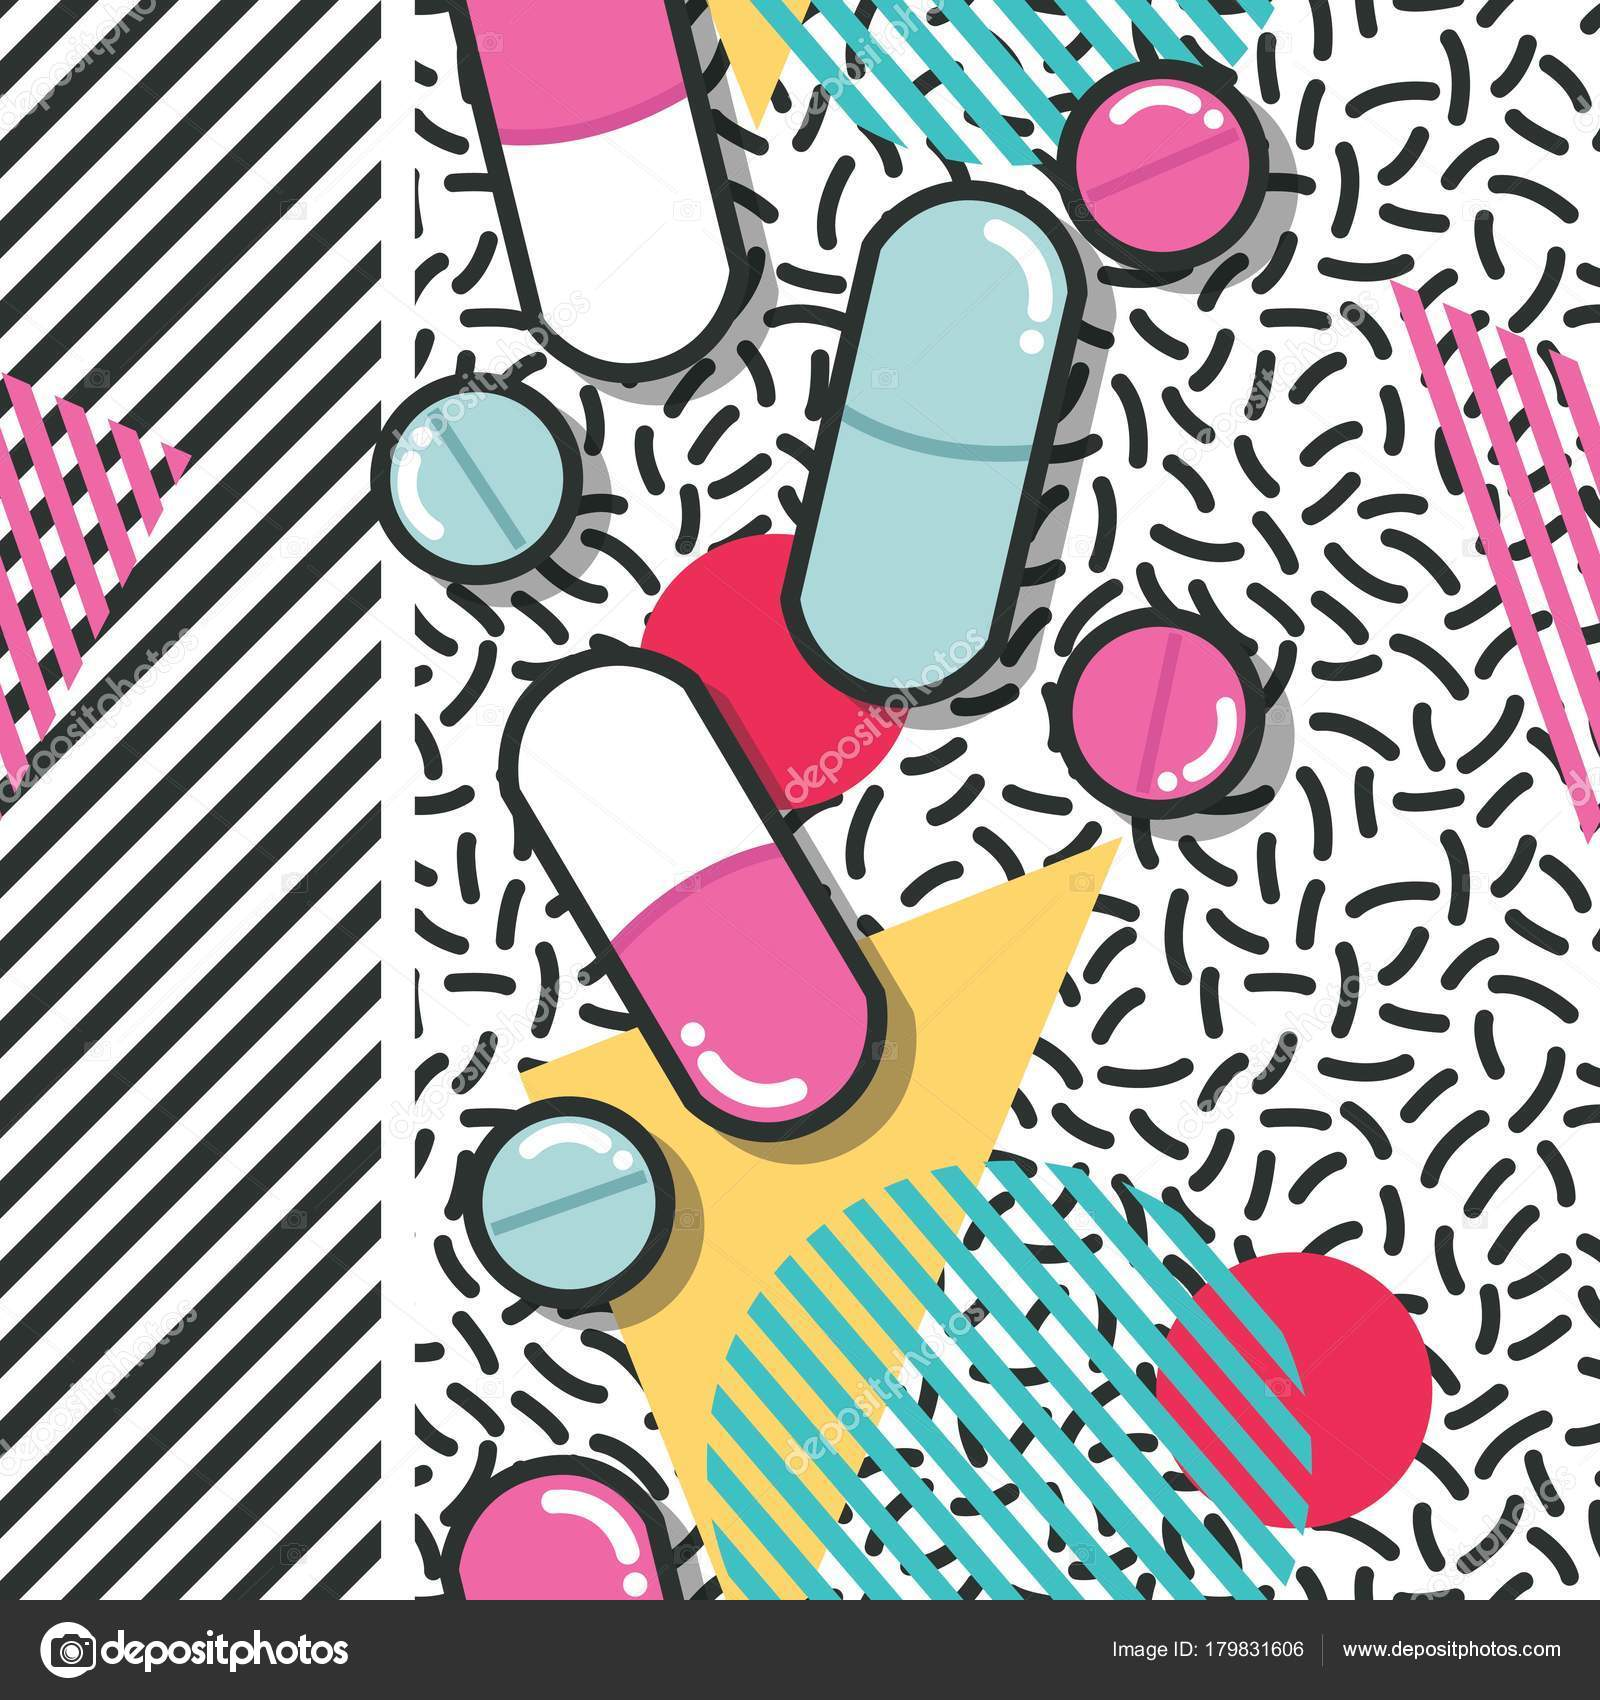 827ee517e1e Pills and capsules seamless pattern